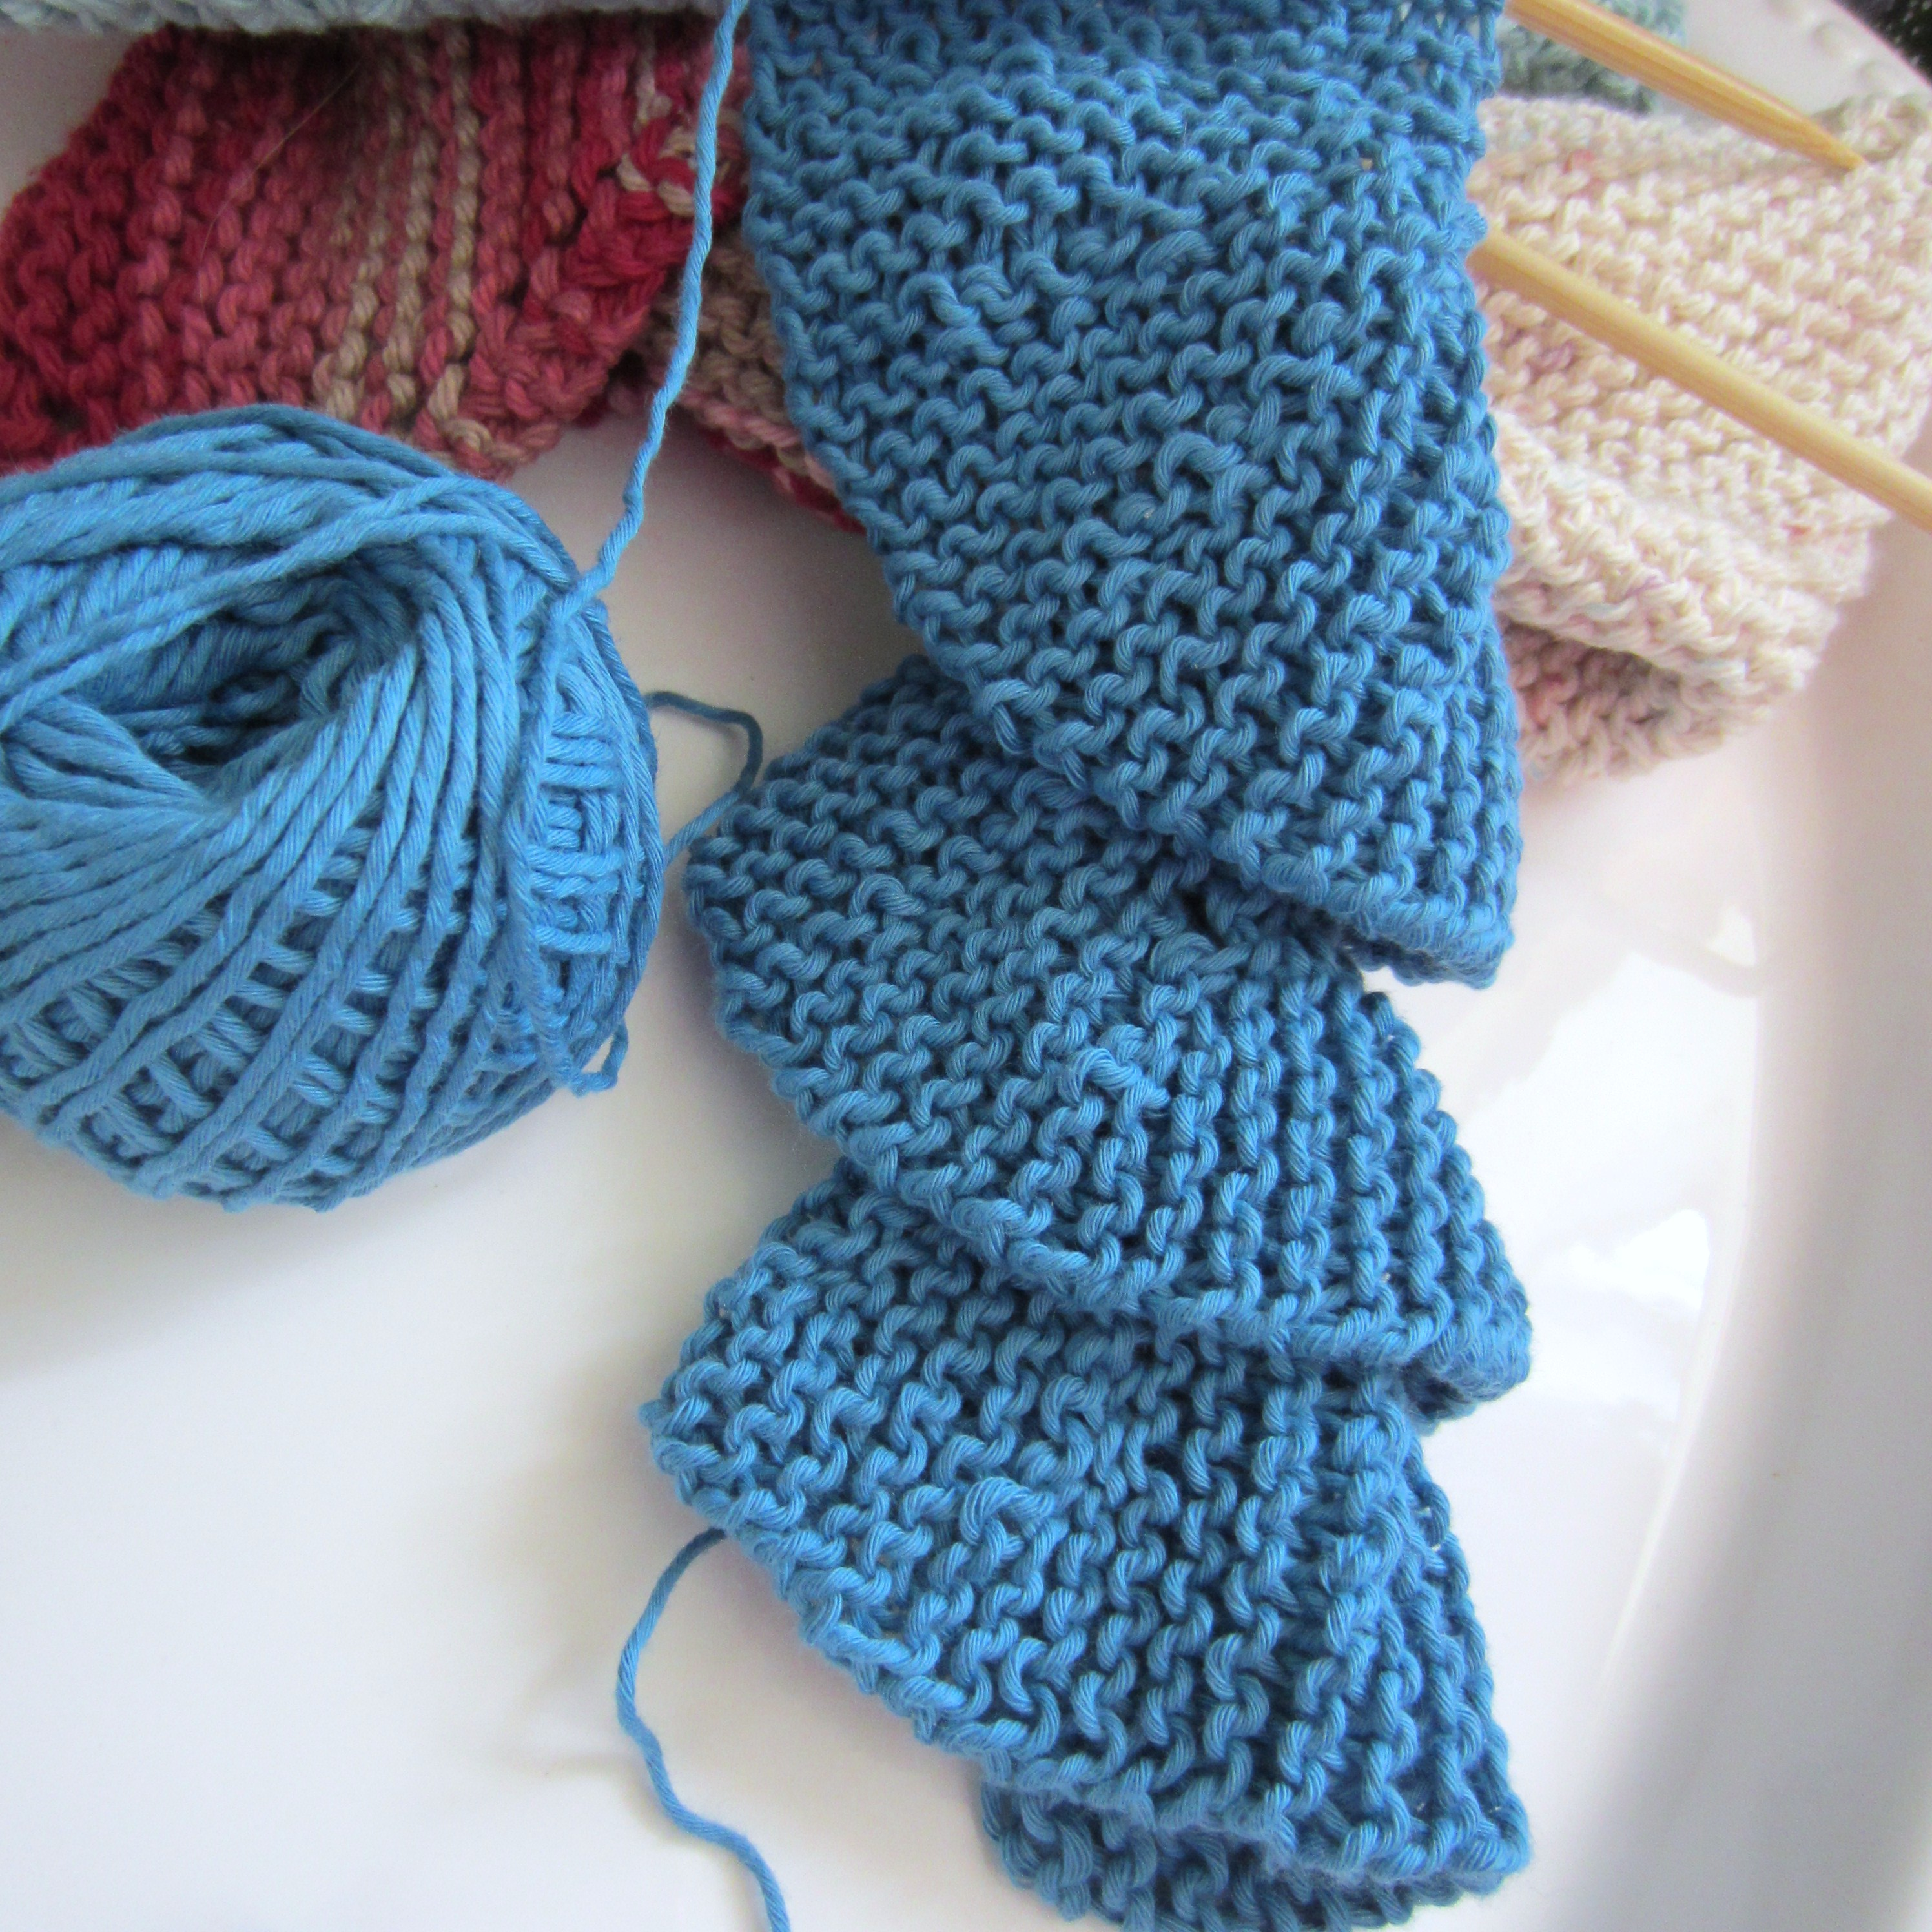 Knit Crochet Scarf Patterns : 301 Moved Permanently